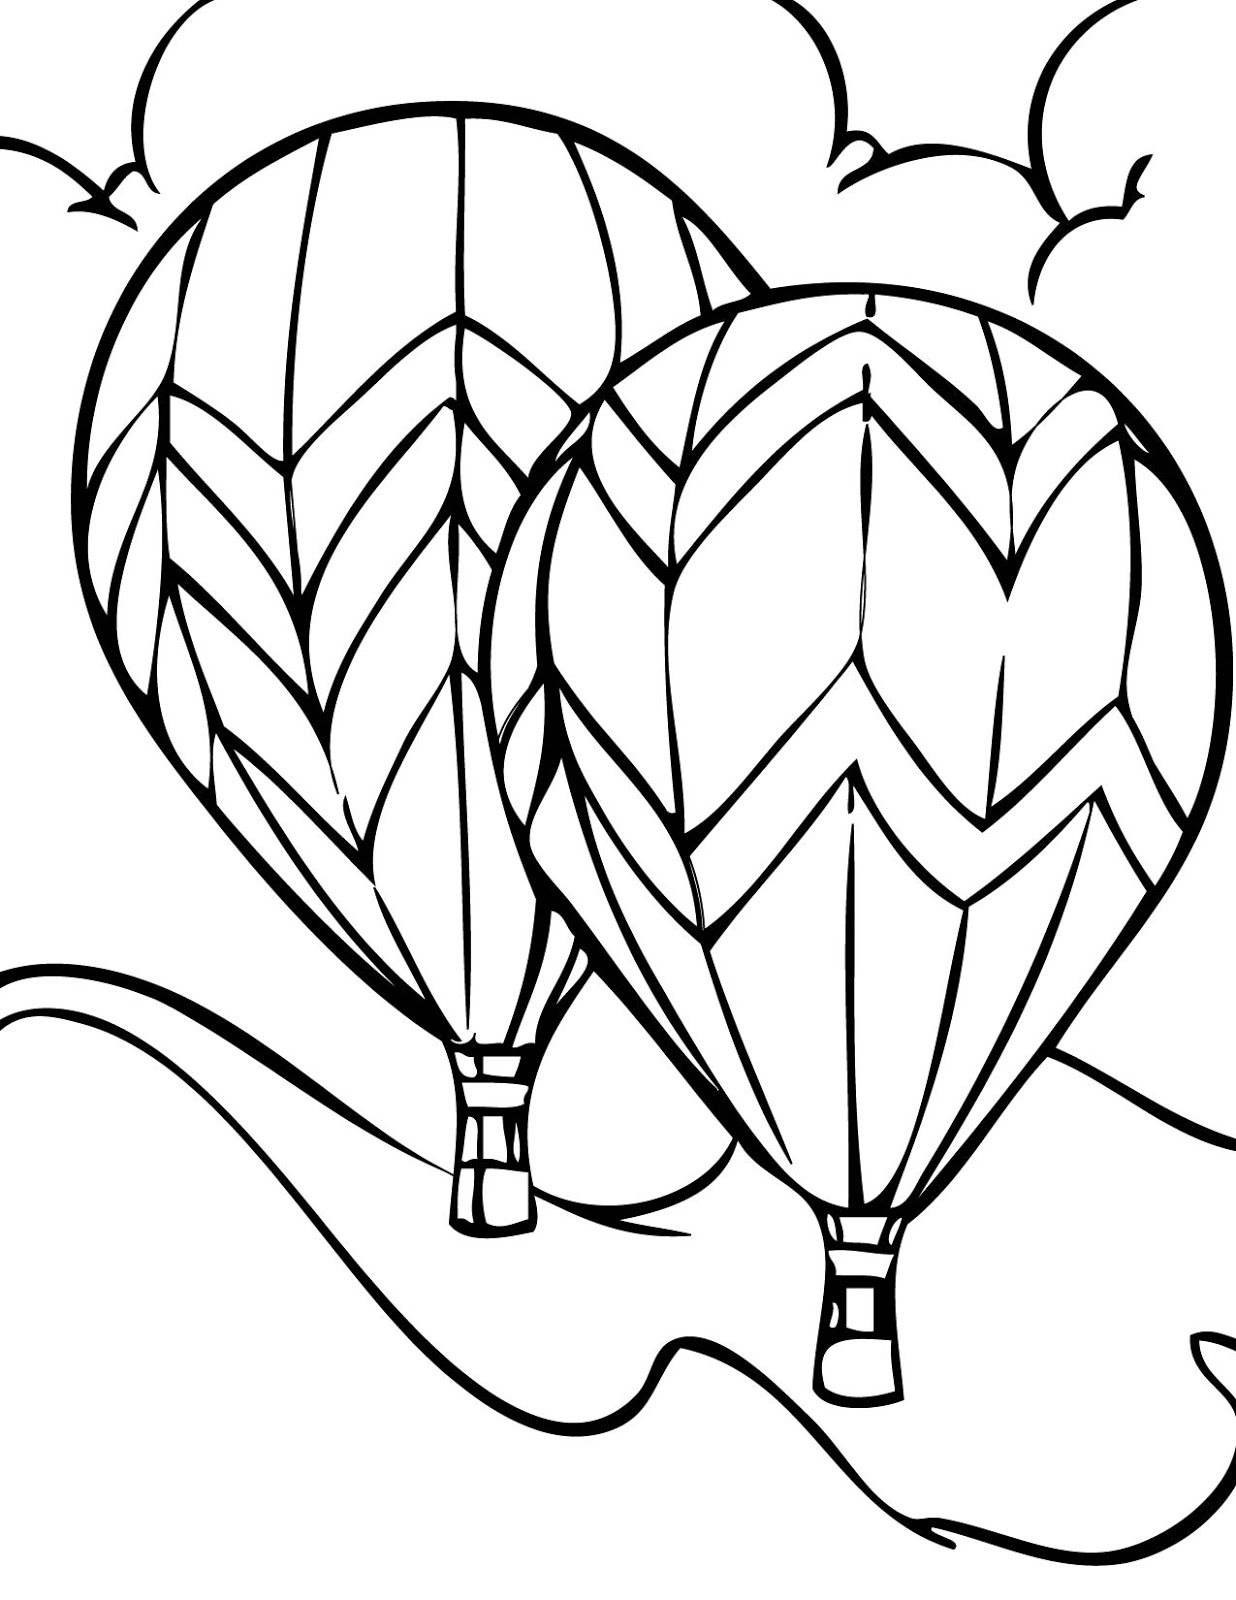 balloons to color fun learn free worksheets for kid ภาพระบายสพาหนะชนด balloons to color